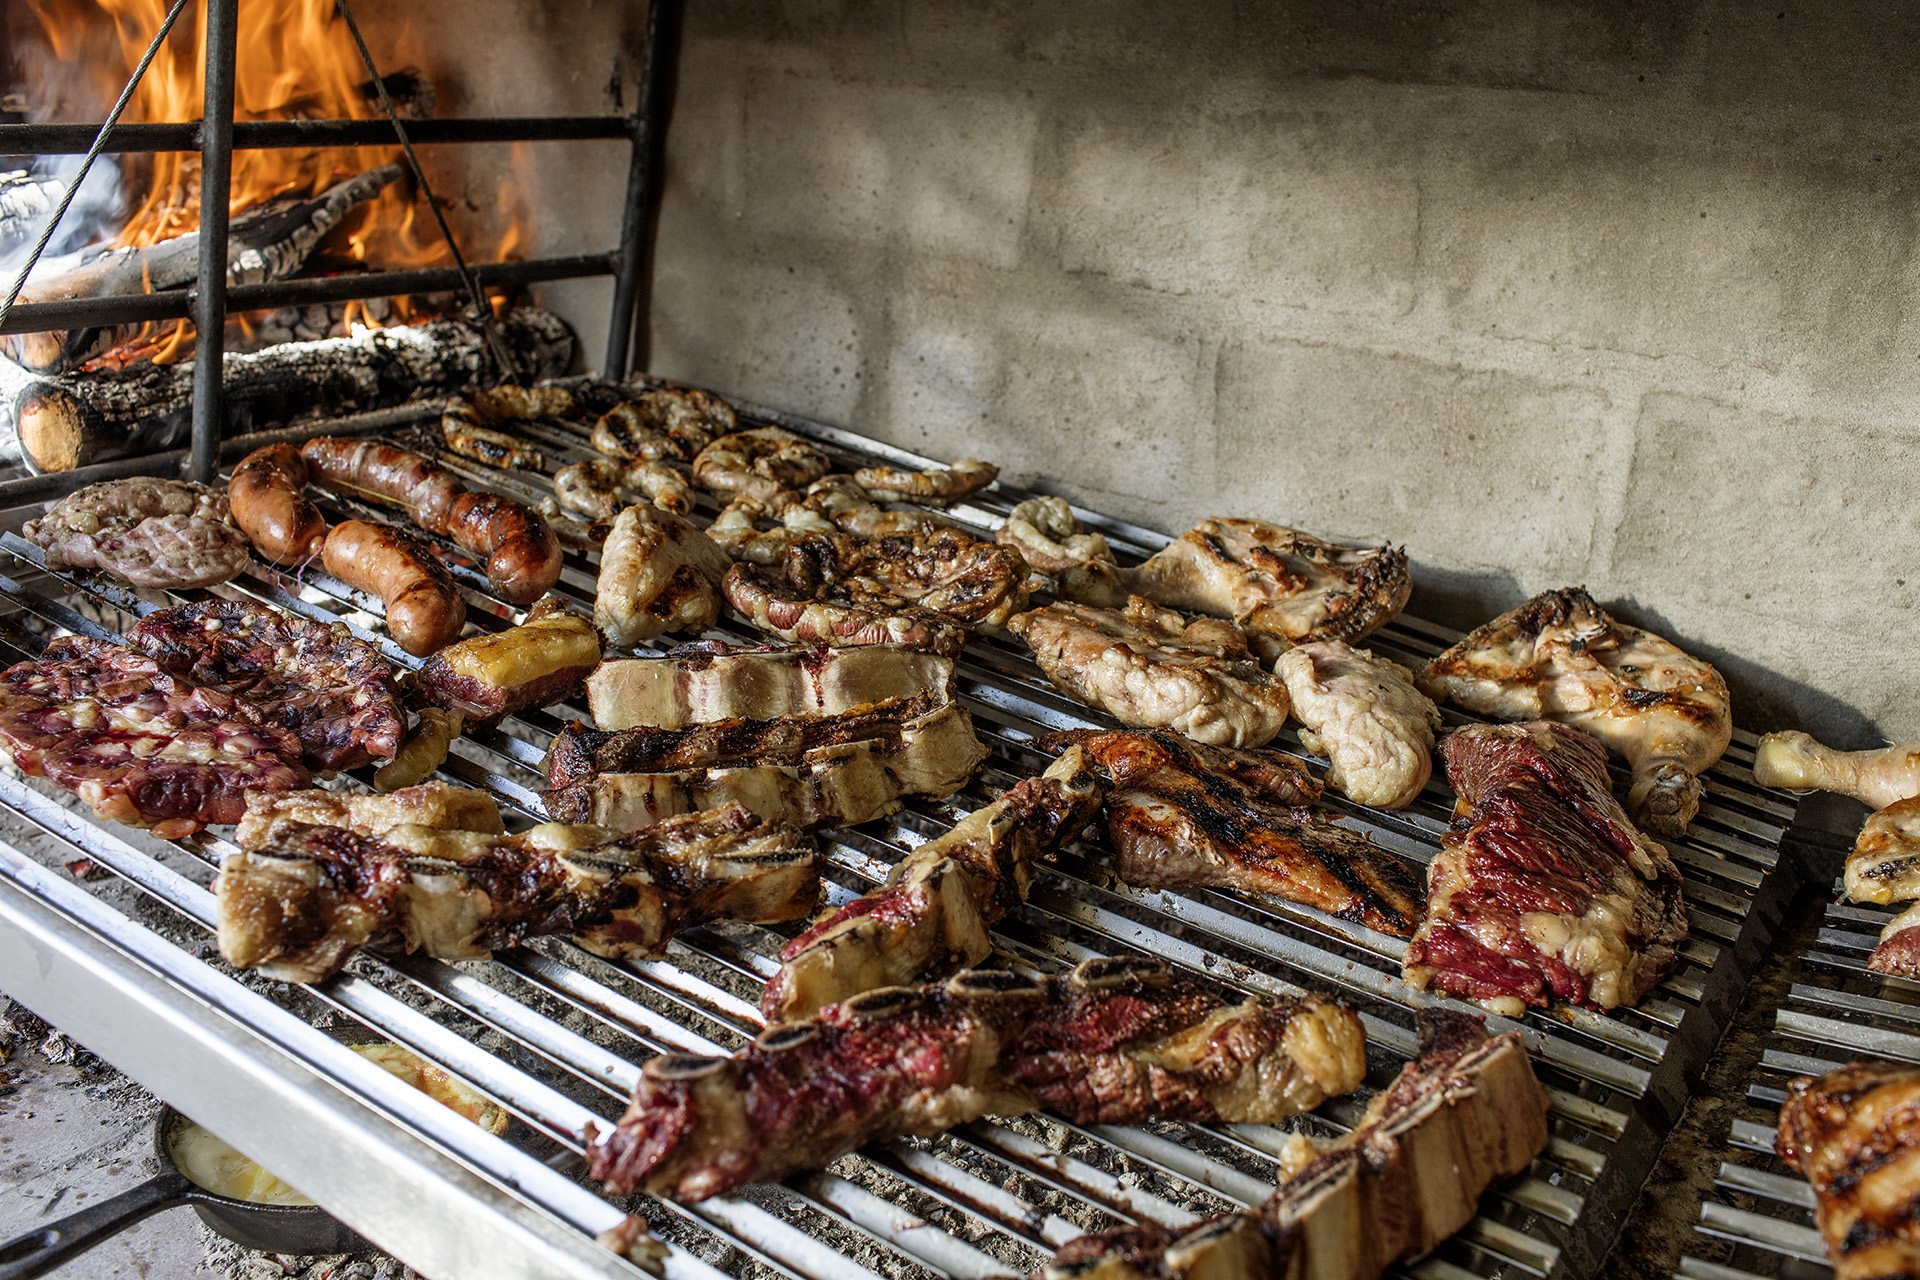 An example of a parrilla